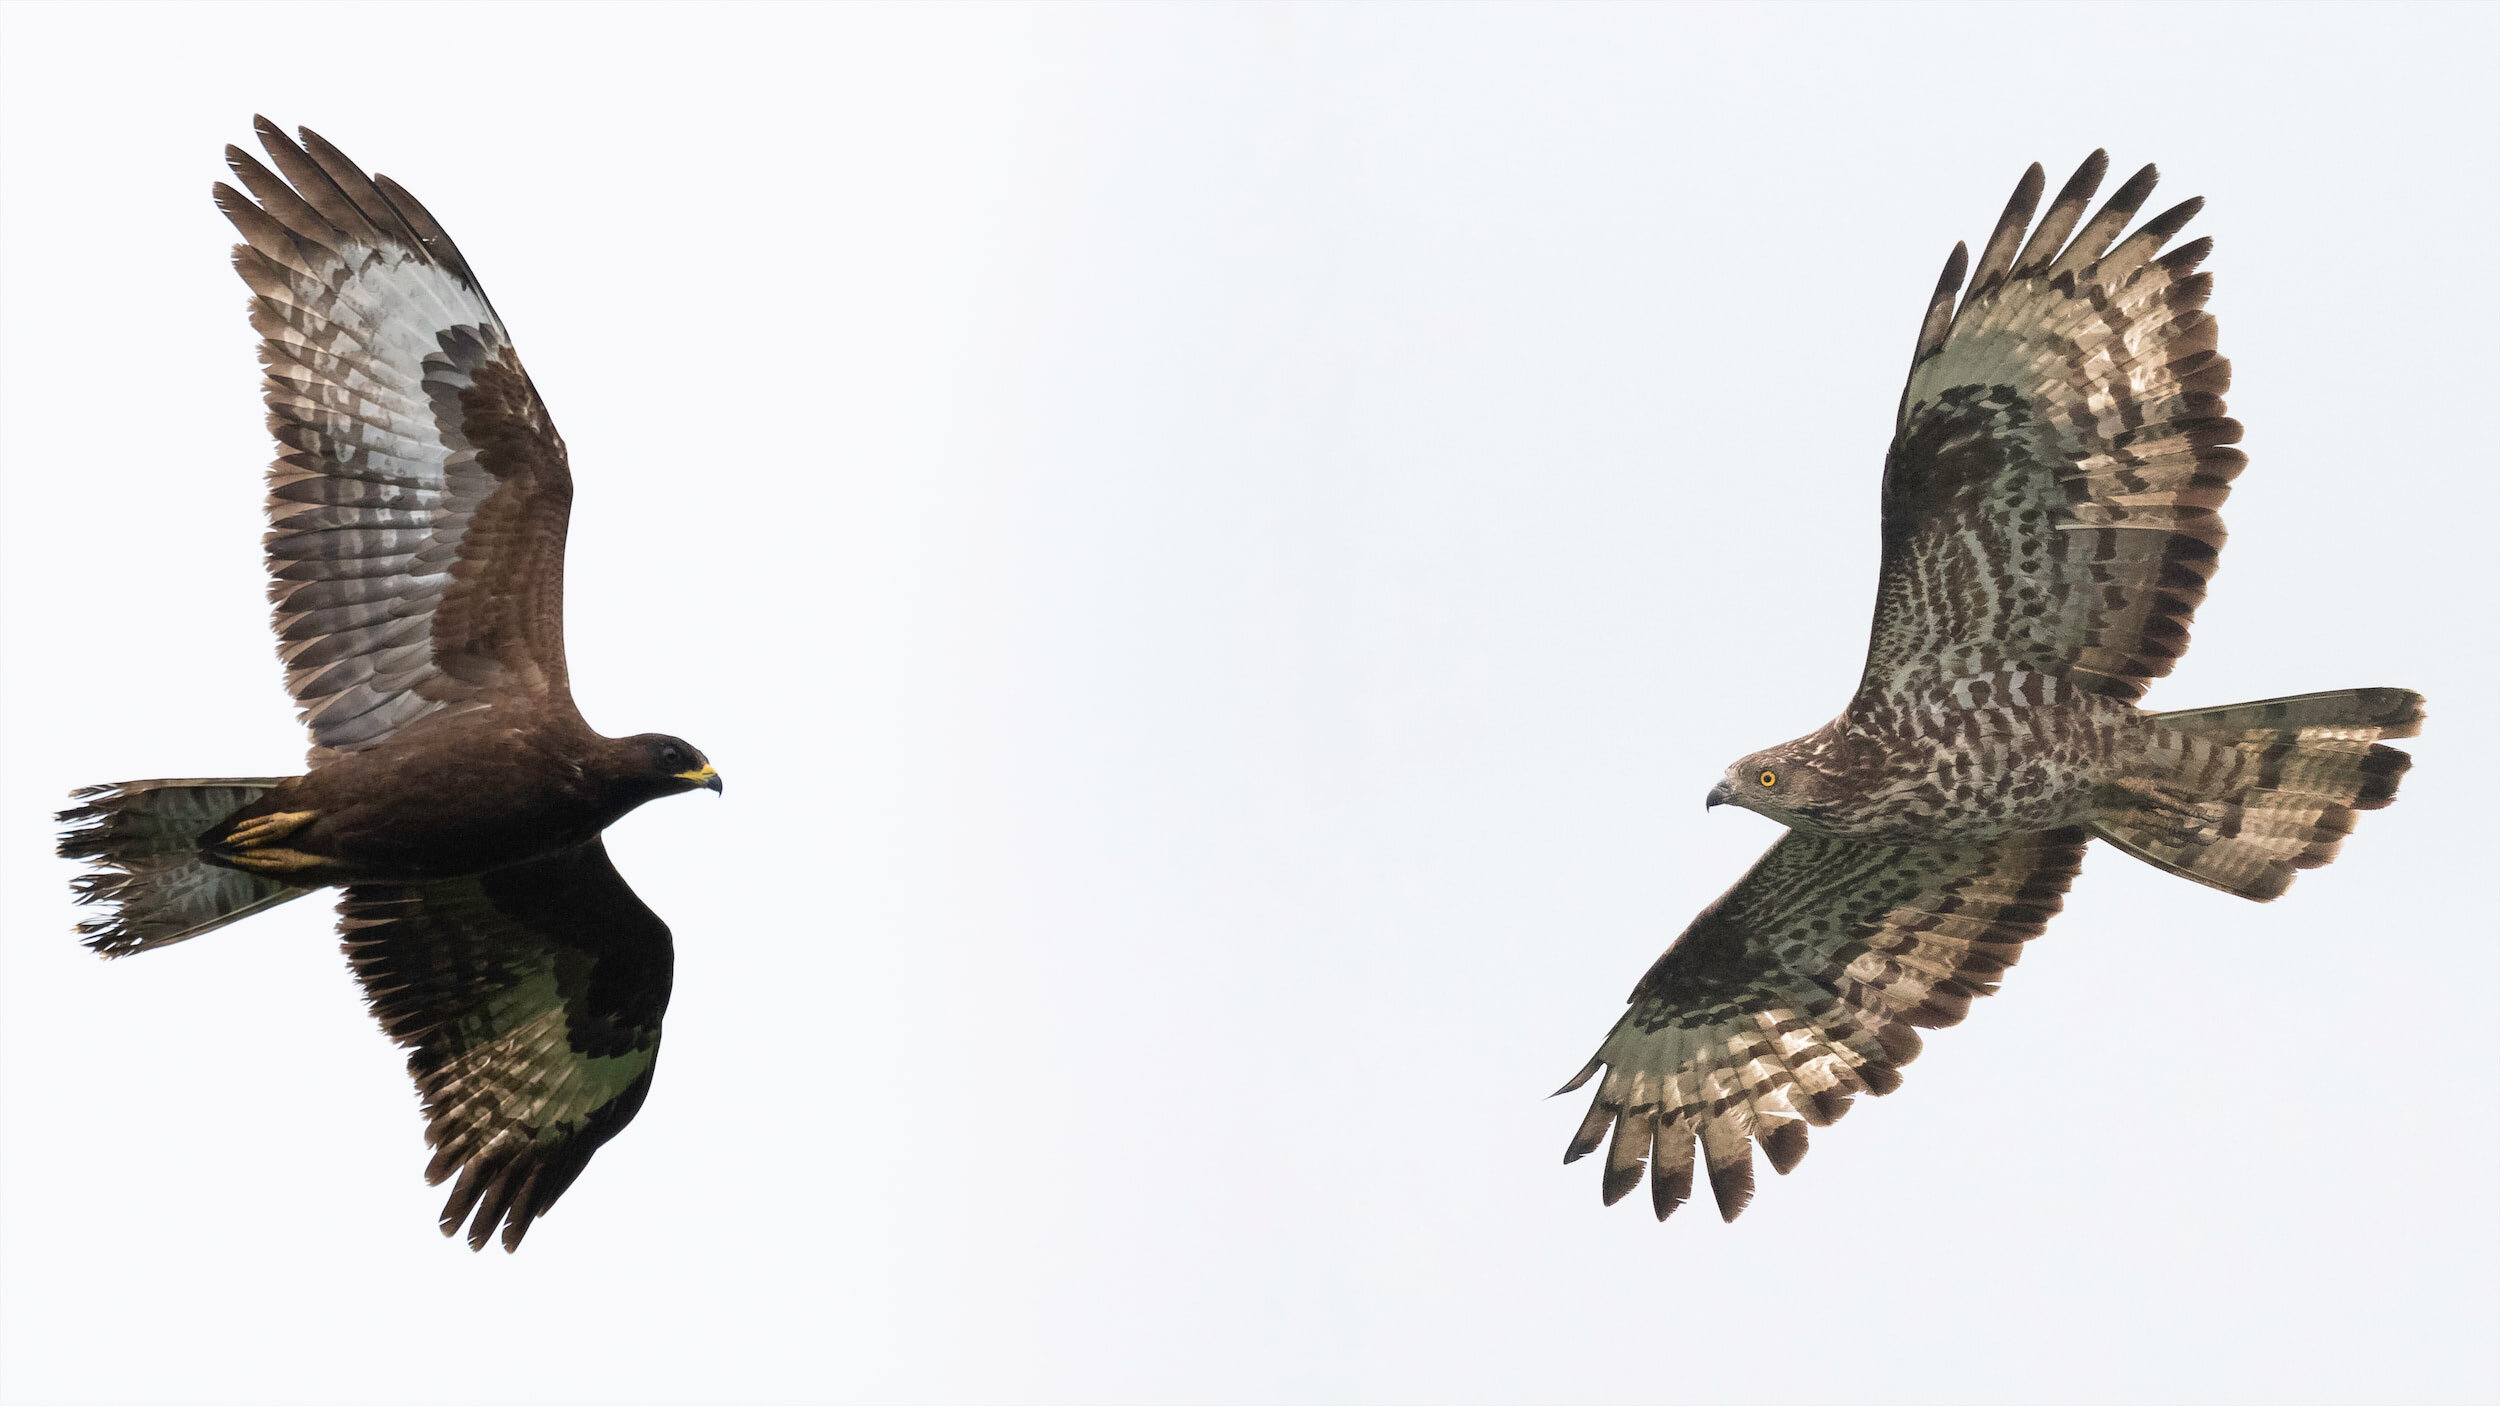 Juvenile (left) and adult female (right) Honey Buzzard. Photo by Bart Hoekstra.